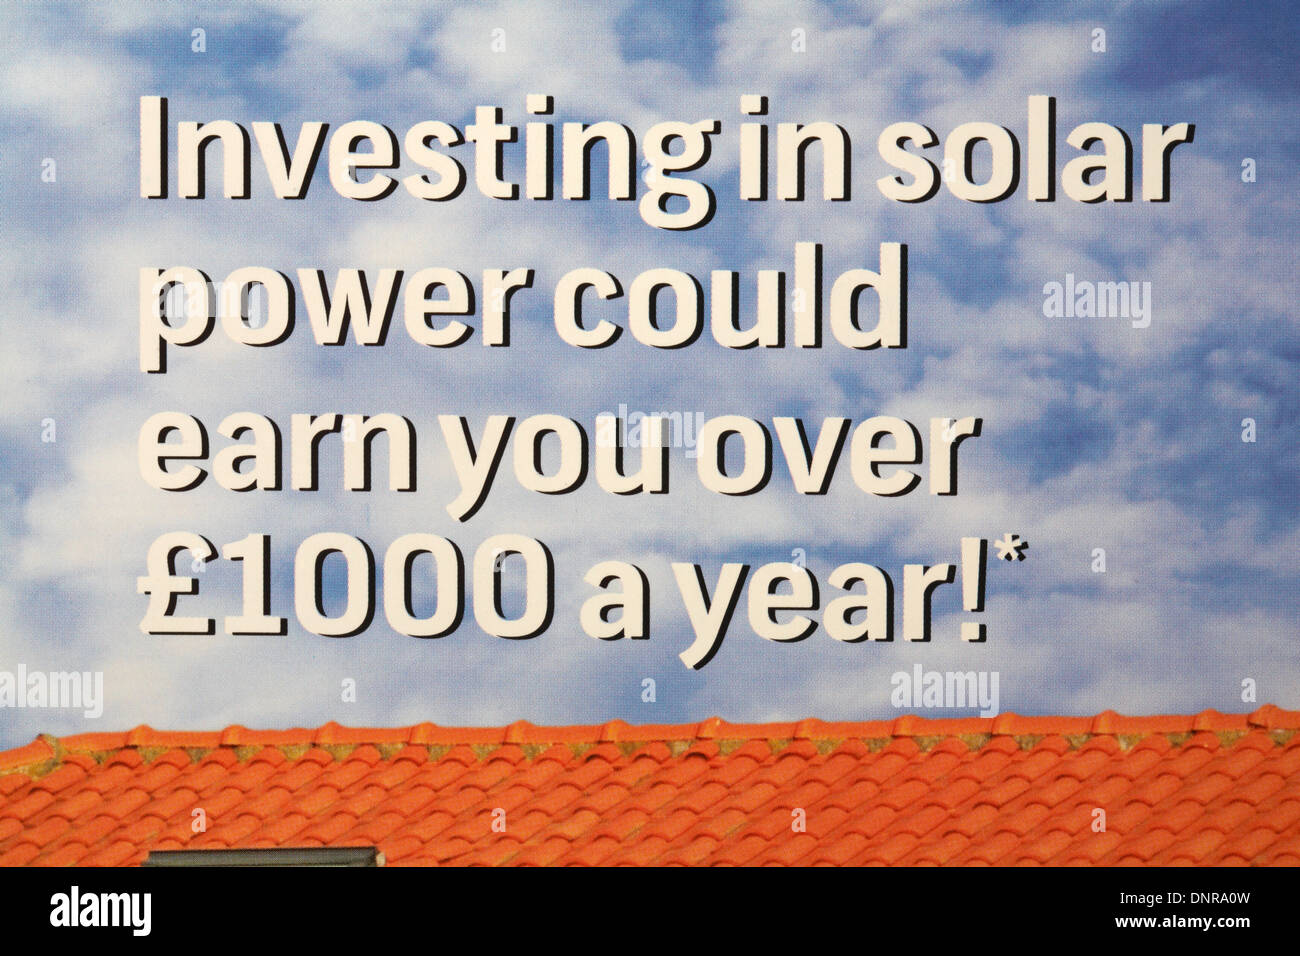 Investing in solar power could earn you over £1000 a year - information on envelope from the Energy Conservation Group - Stock Image